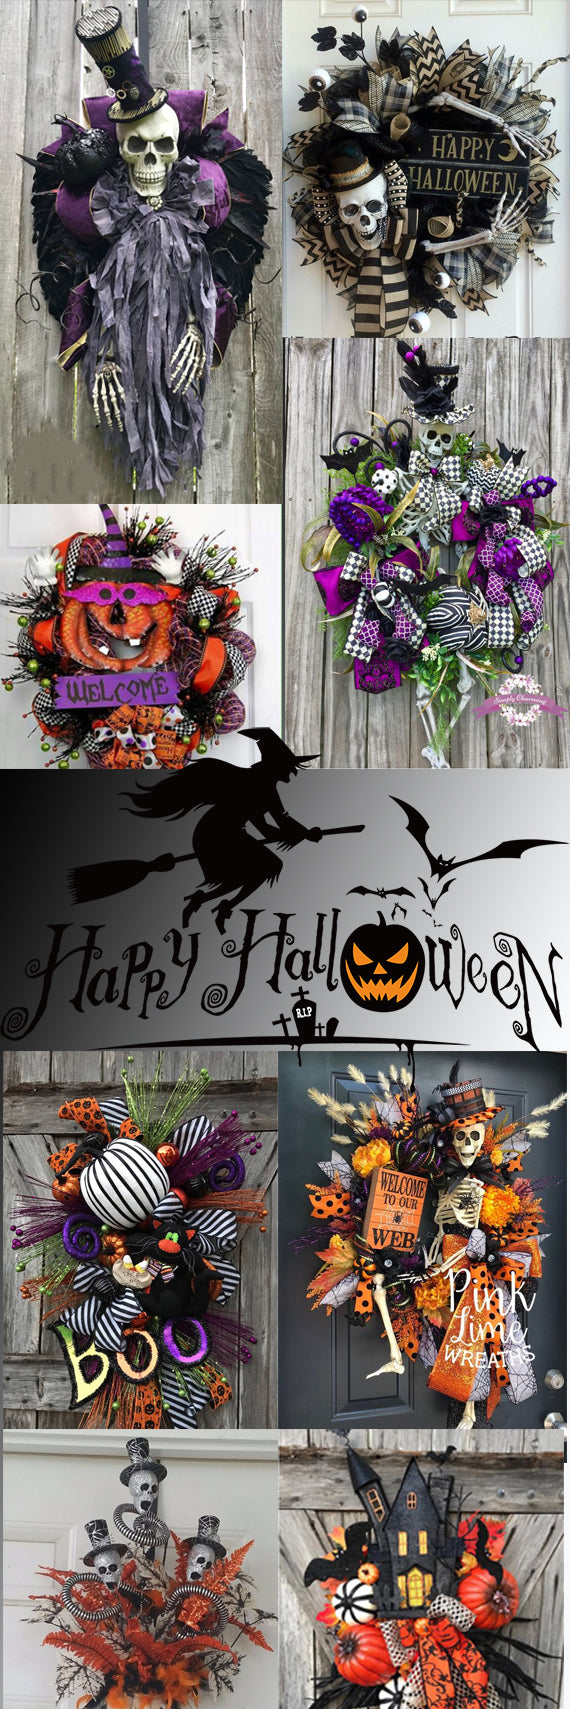 Halloween; Halloween Tree; Halloween Decorations; Halloween Decor;  Spiders; Skulls;  Pumpkins Polka Dots;  Witches; Skeletons; Halloween Time; Dracula; Witches Hats; Spooktacula; Halloween collector;